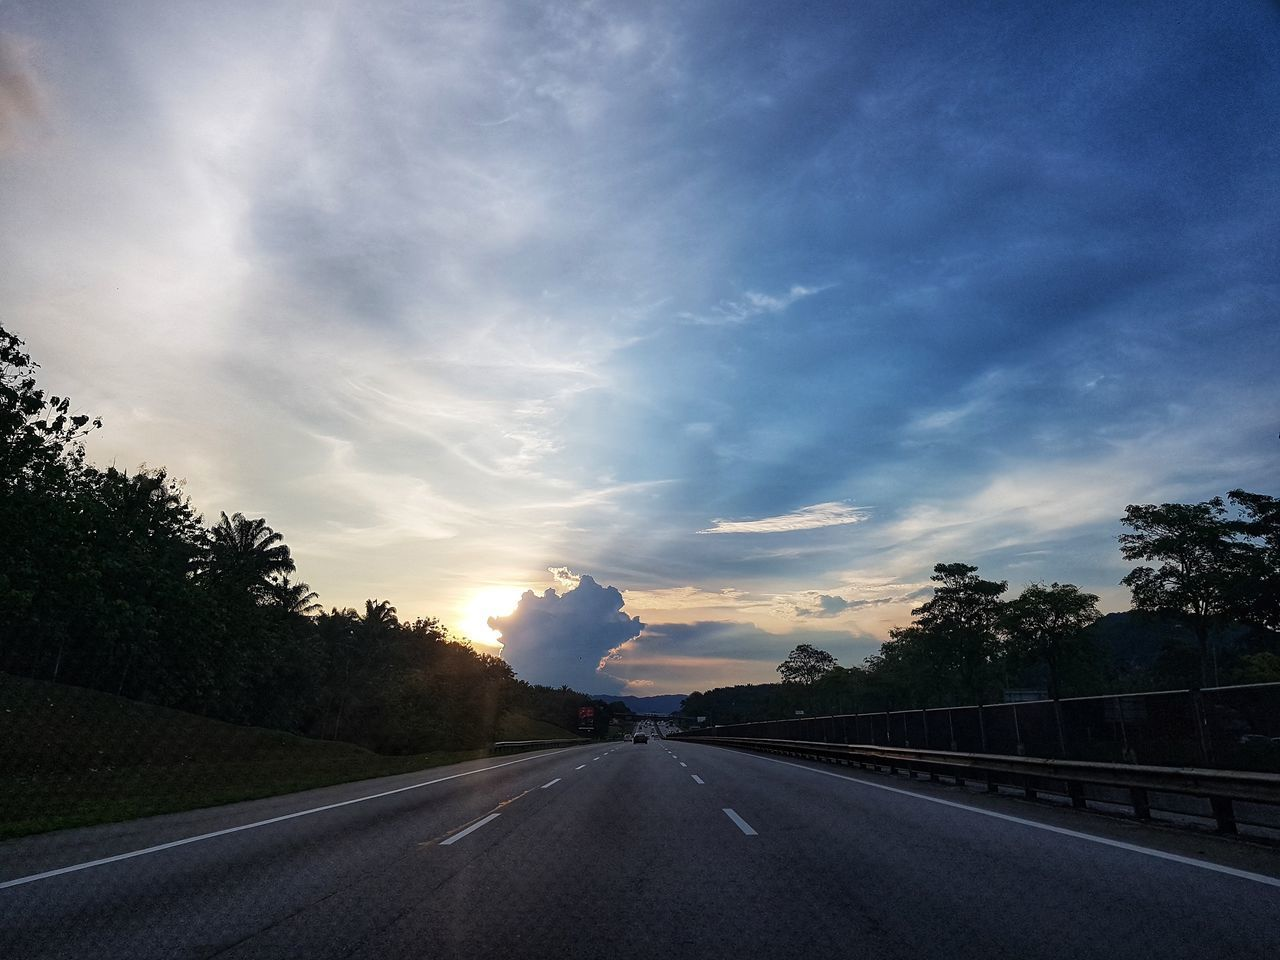 road, transportation, sky, cloud - sky, the way forward, direction, tree, symbol, nature, plant, sunset, diminishing perspective, road marking, mode of transportation, no people, marking, sign, beauty in nature, highway, motor vehicle, outdoors, dividing line, long